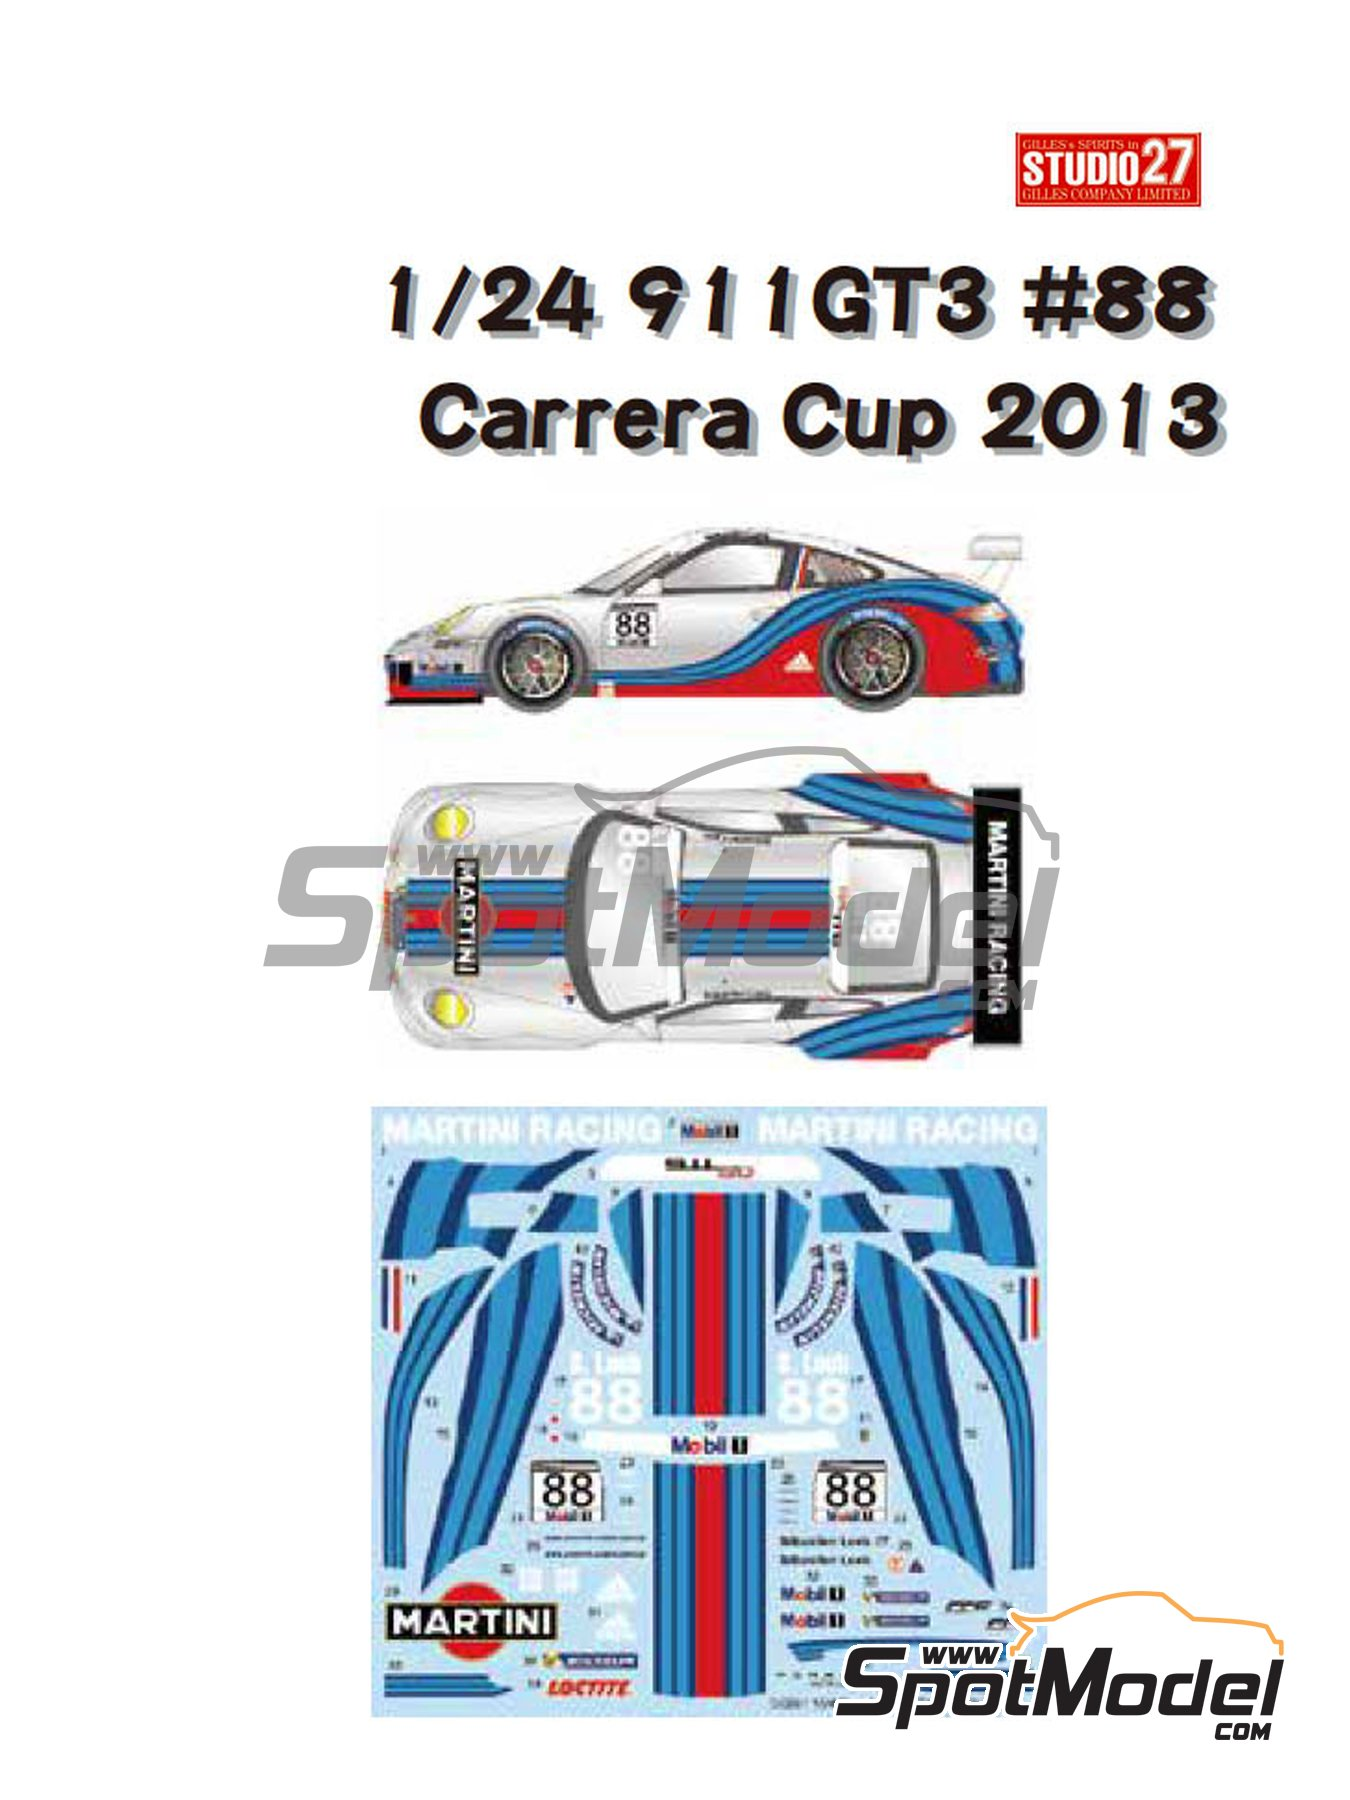 Porsche 911 GT3R Martini Racing - Carrera Cup 2013 | Marking / livery in 1/24 scale manufactured by Studio27 (ref. ST27-DC991) image